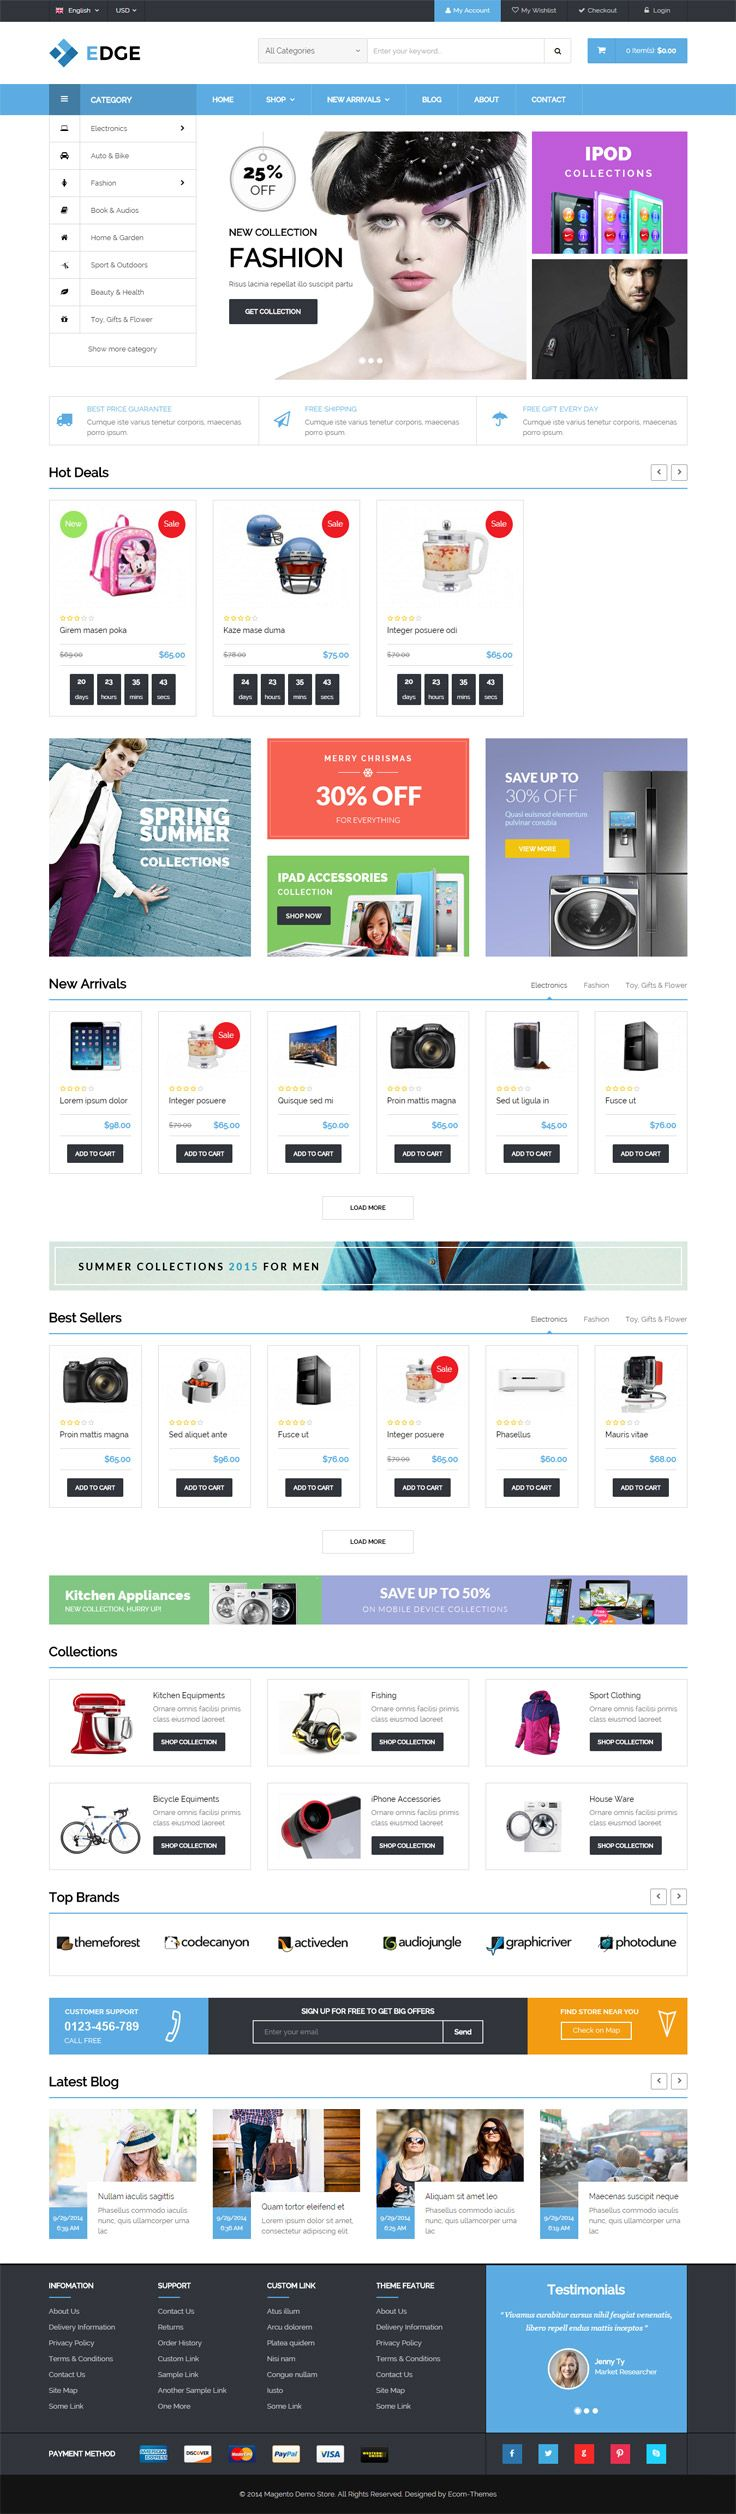 #Magento is a popular open source e-commerce software platform that has a modular architecture and is extremely flexible. It comes with a number of online shop maintenance capabilities. It is also simple to configure and easy to customize. And despite the fact that it was launched just last year, it has been gaining more and more popularity among Web designers and e-business owners.#themes